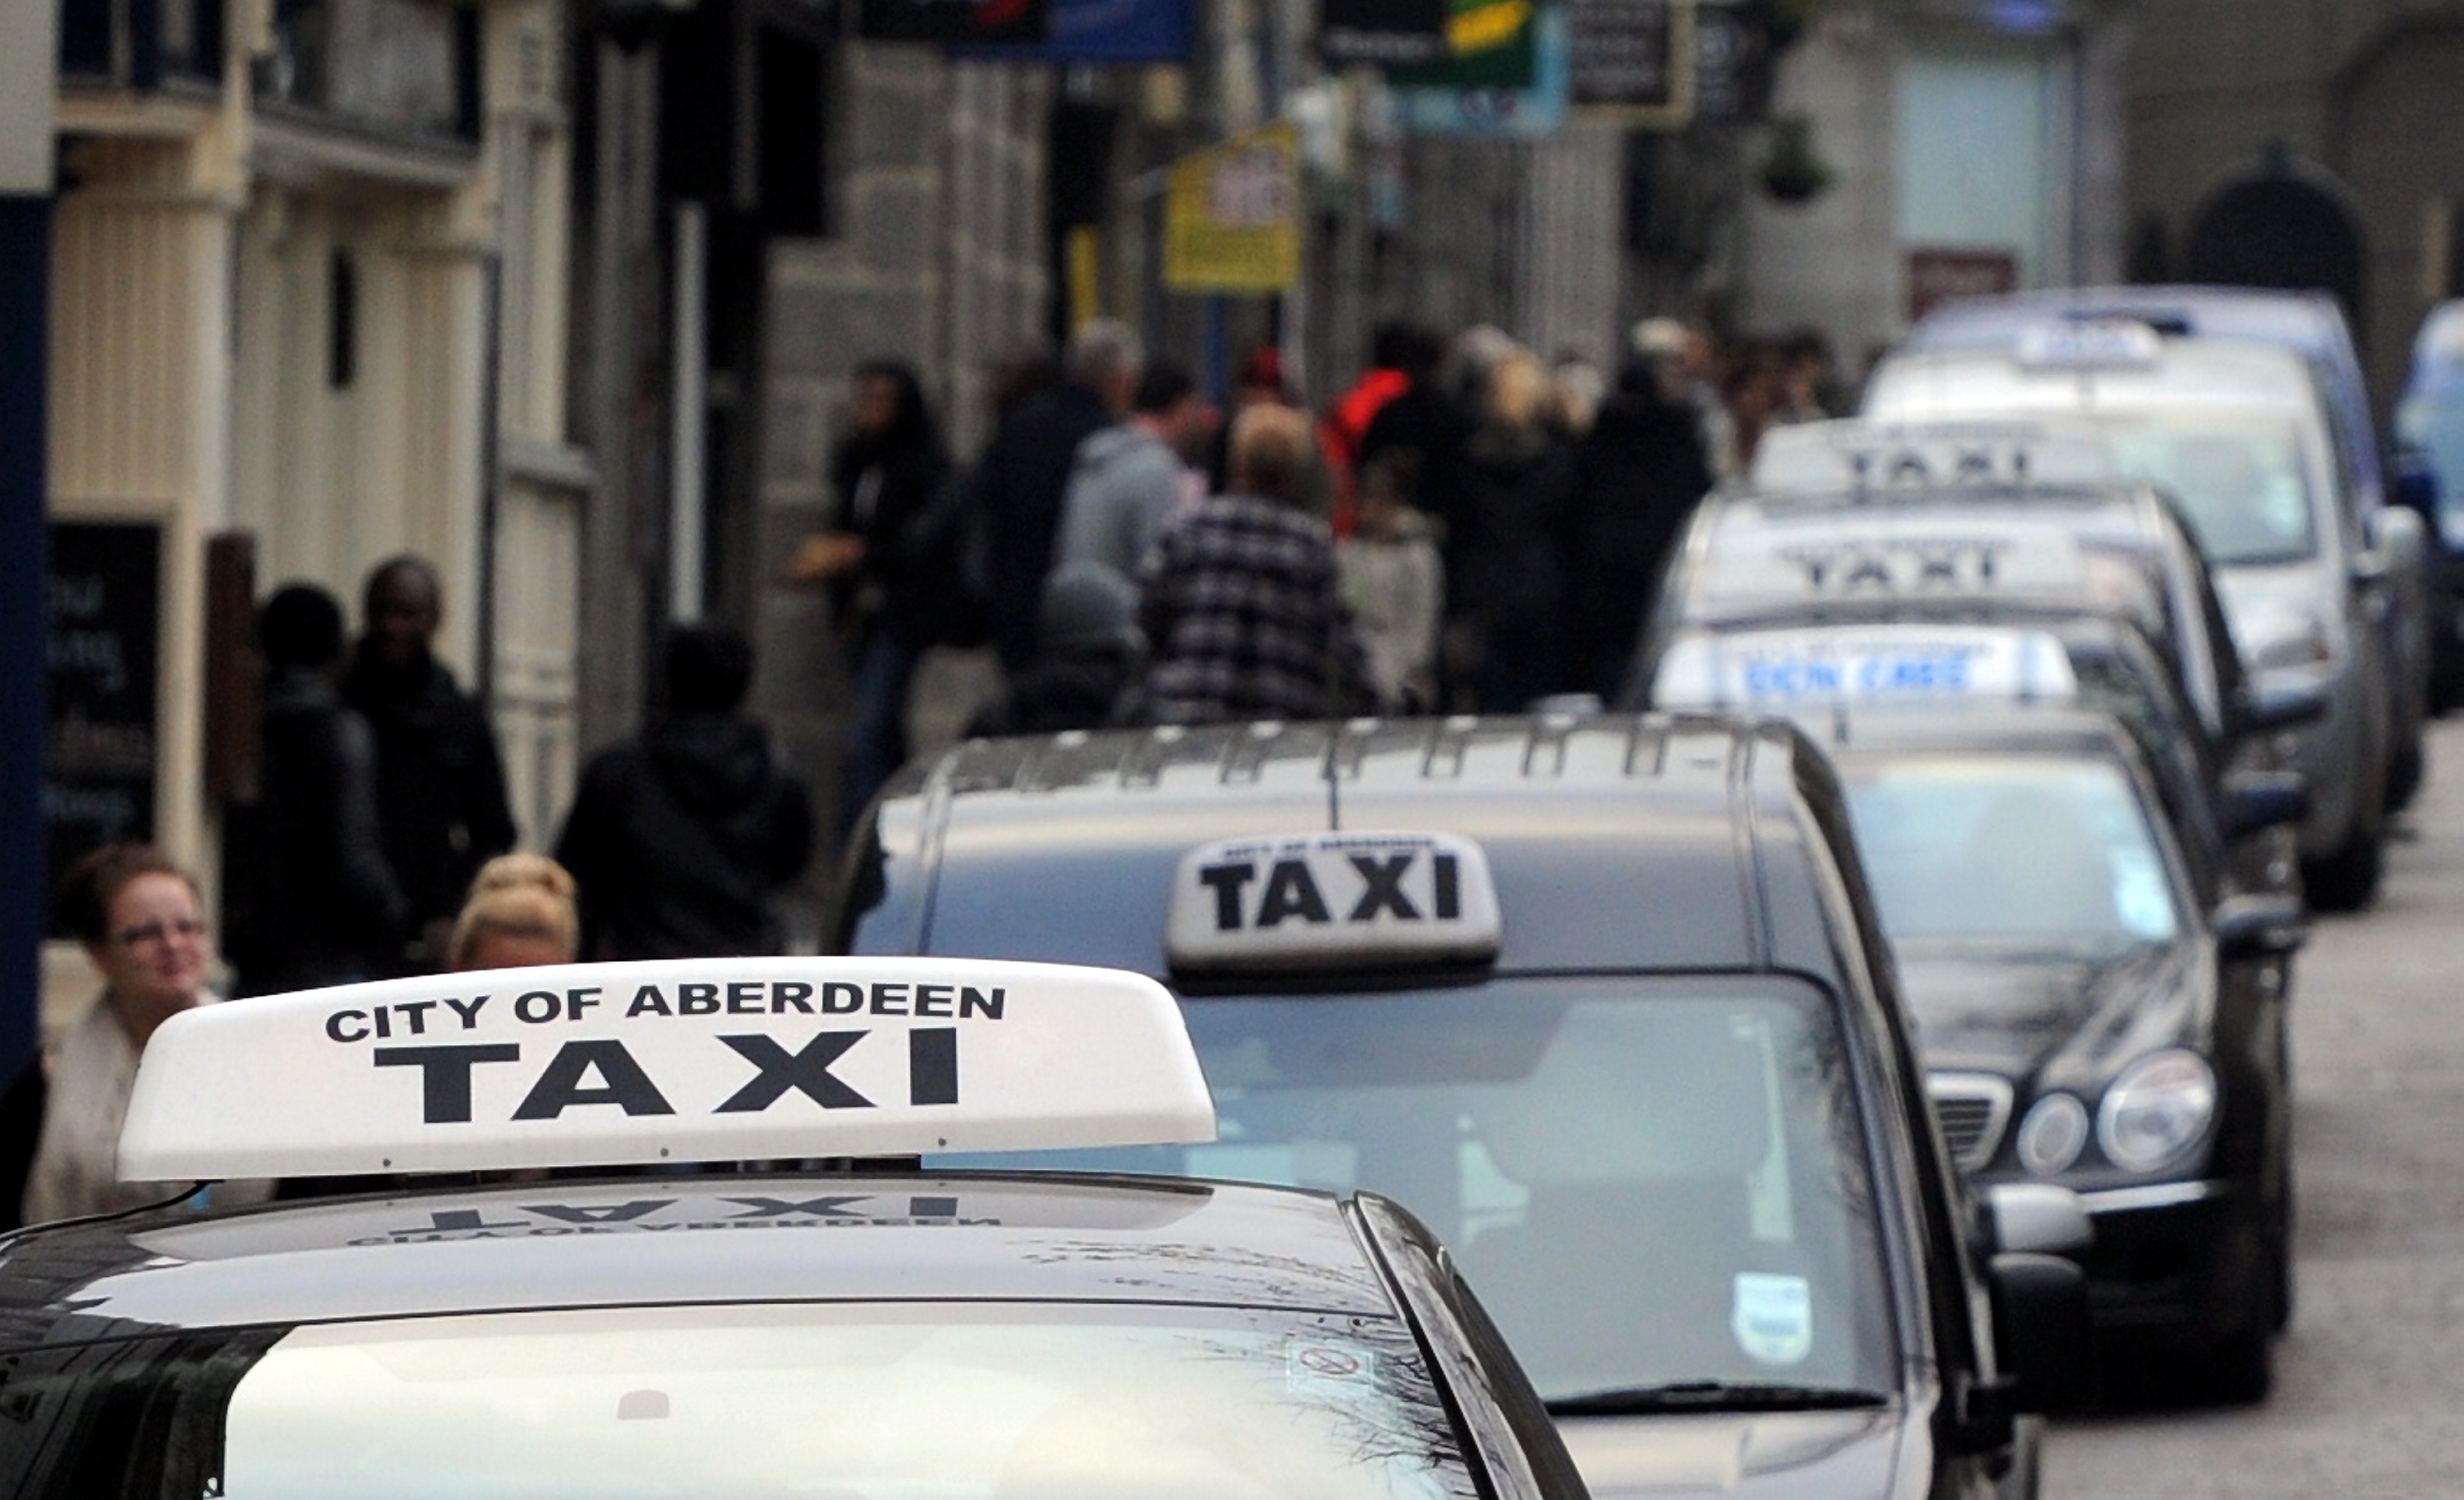 Aberdeen taxis could be in line for a shake up to help disabled people.